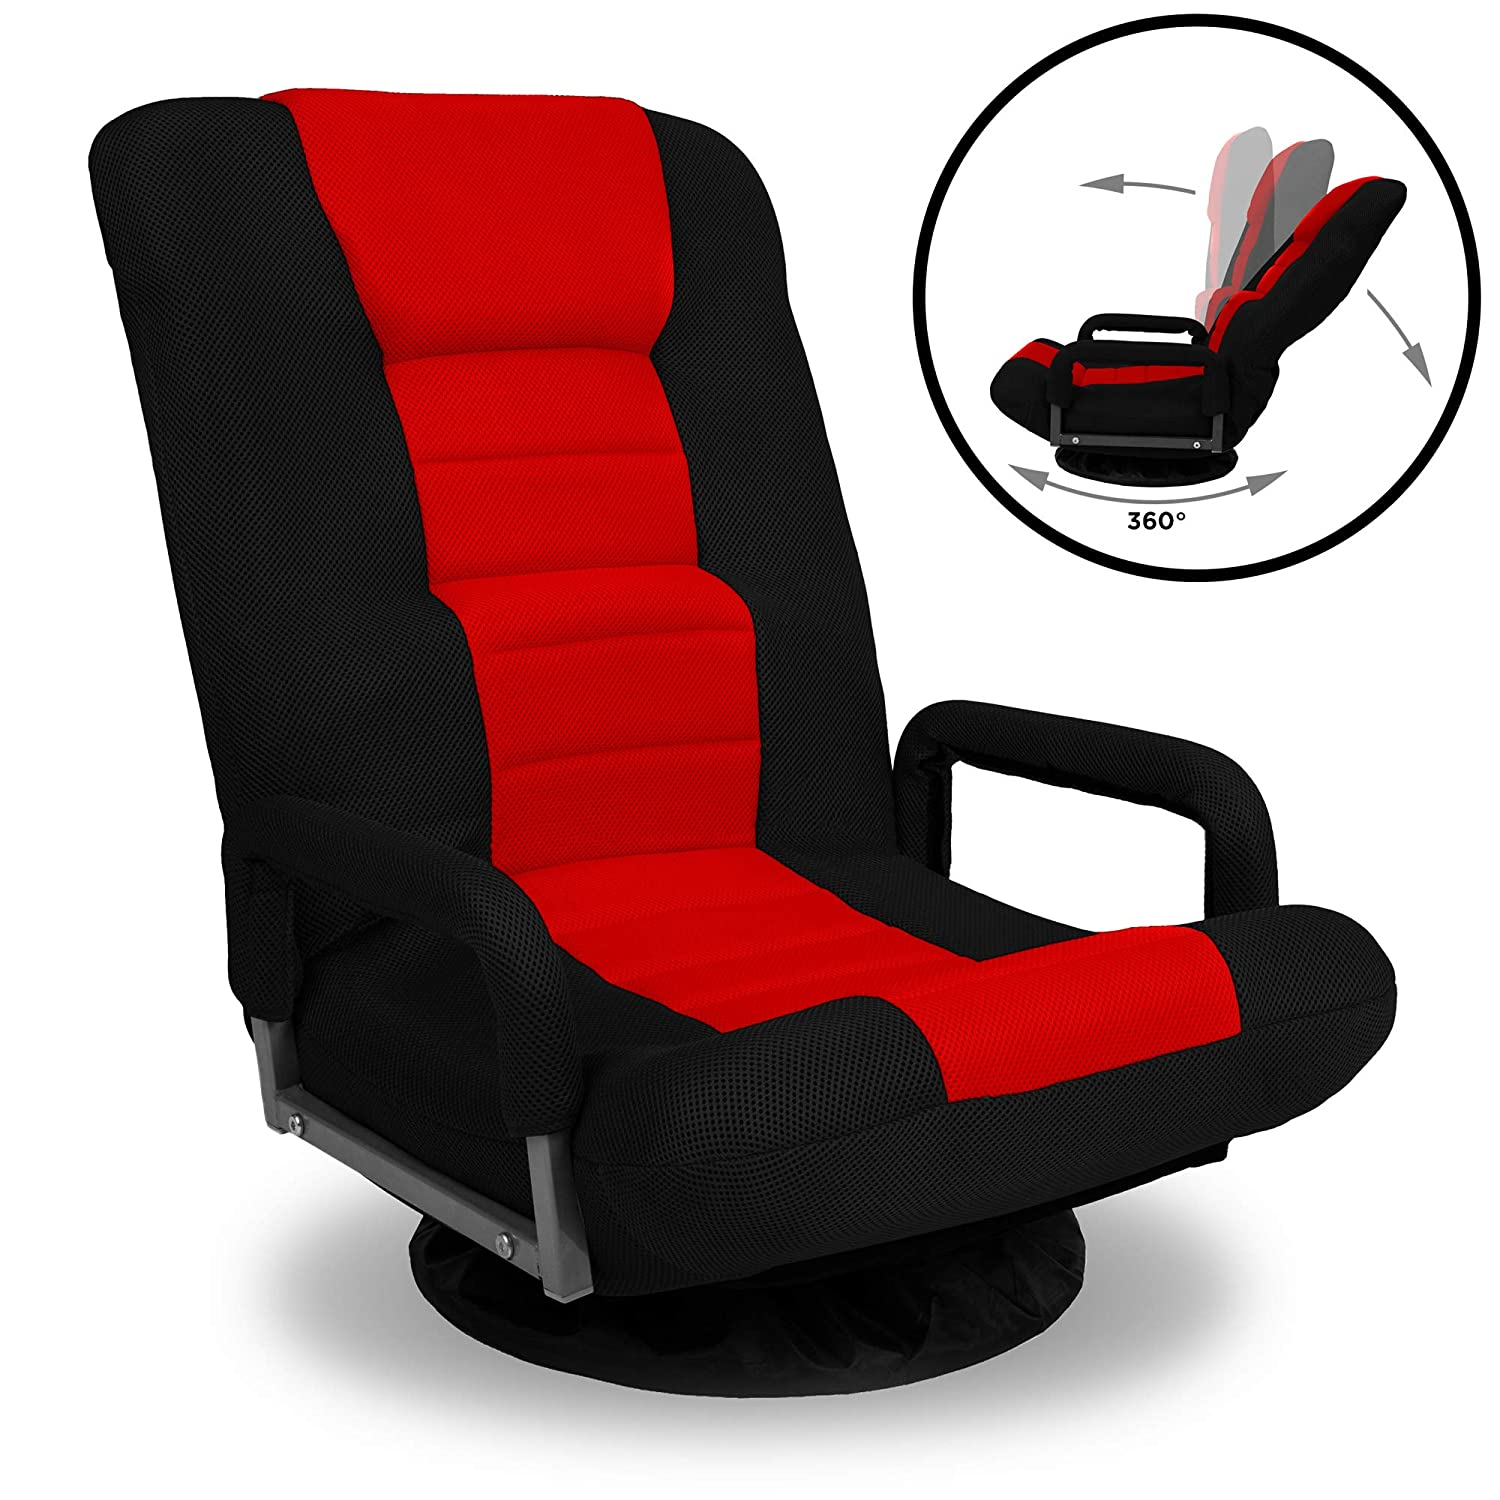 Best Choice Products 360-Degree Swivel Gaming Floor Chair w Armrest Handles, Foldable Adjustable Backrest – Red Black